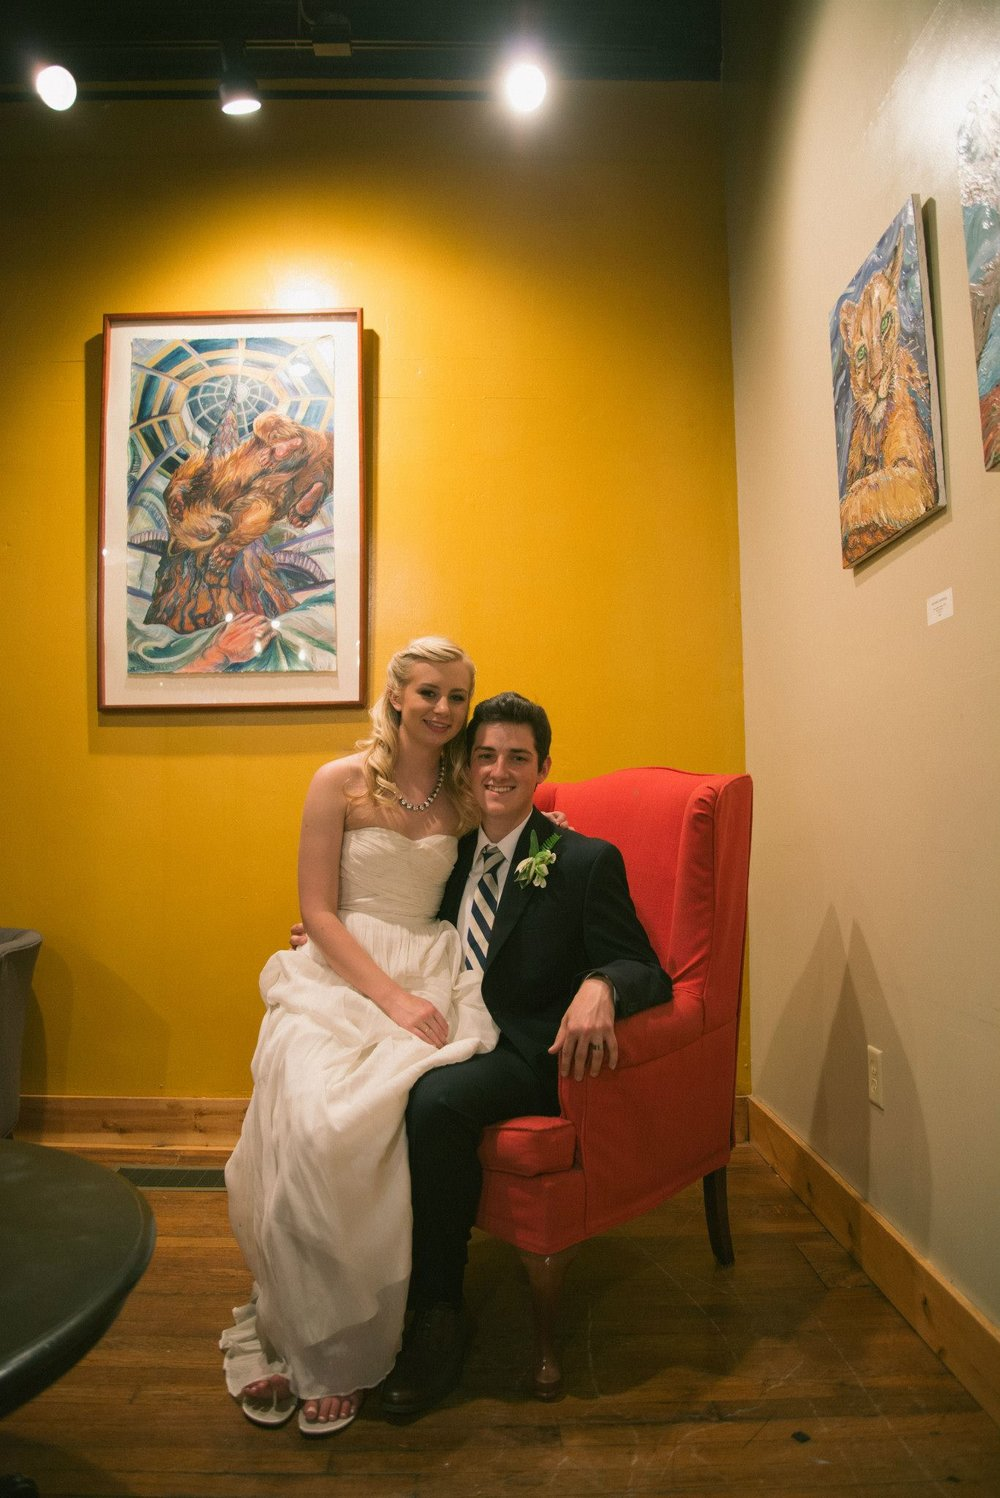 Our Wedding Reception in 2014 at Grassroots Coffee in Thomasville, GA